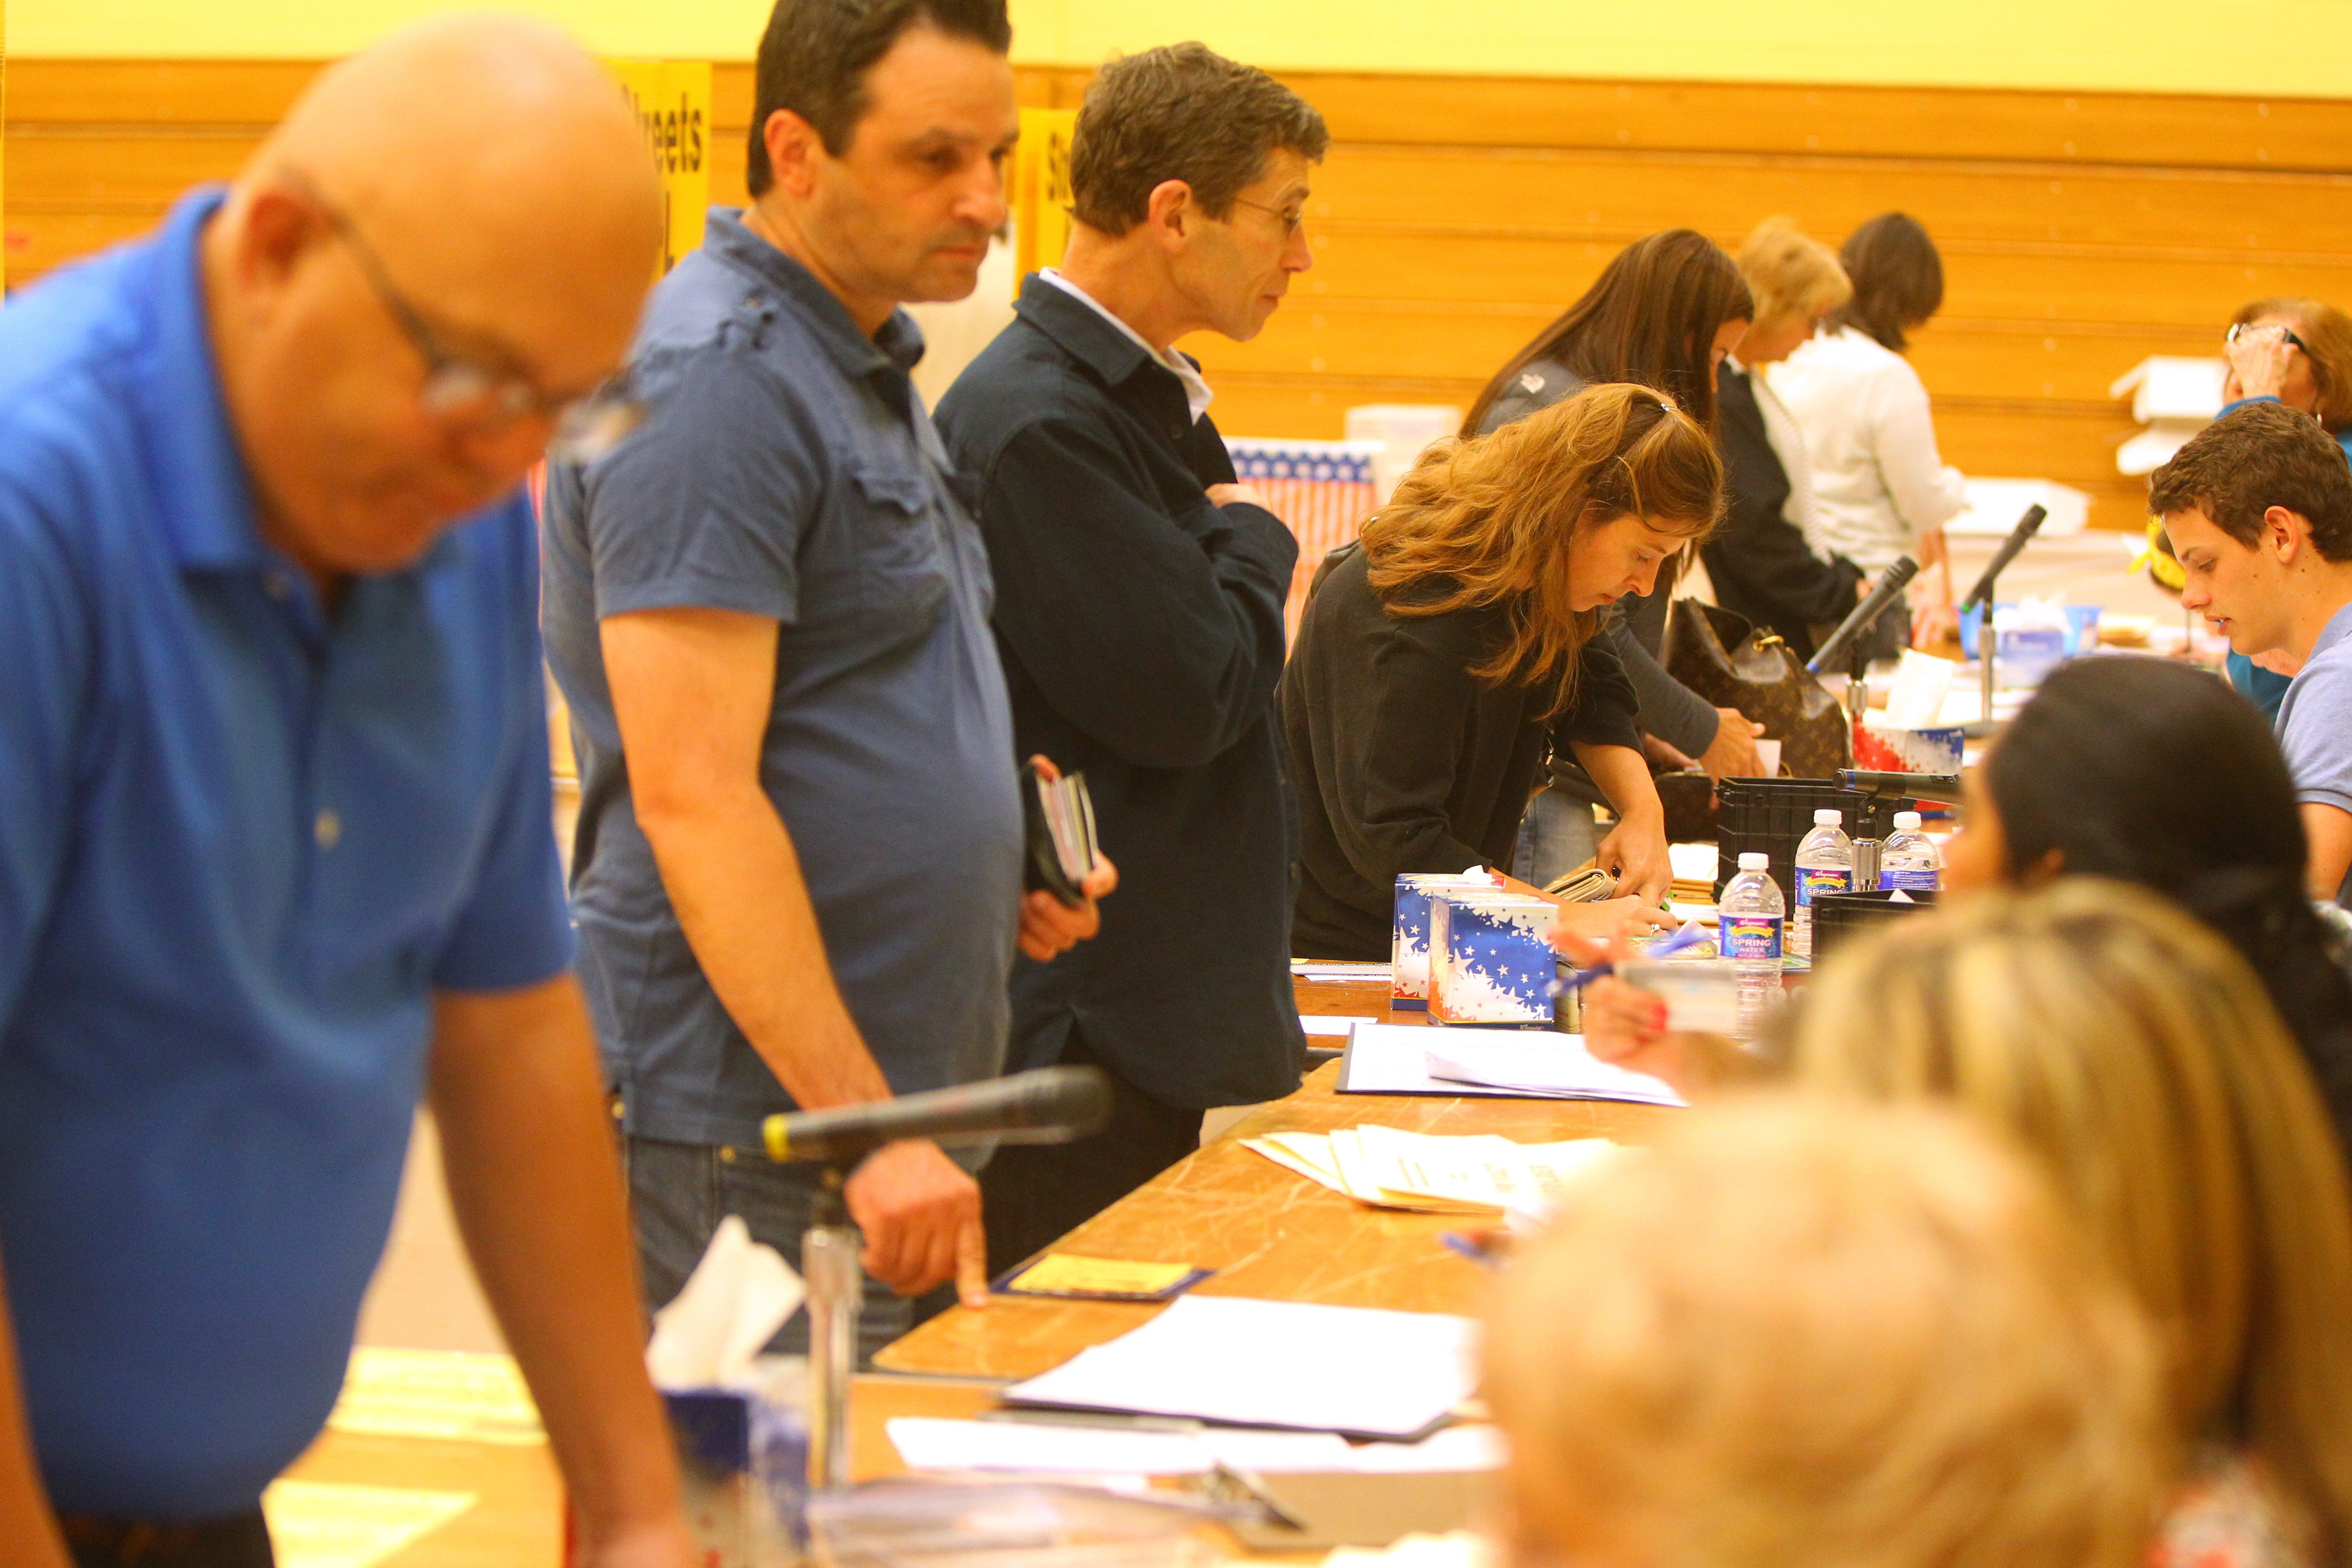 Residents line up to vote in the gym at Williamsville North High School on May 19, 2015.    (Mark Mulville/News file photo)